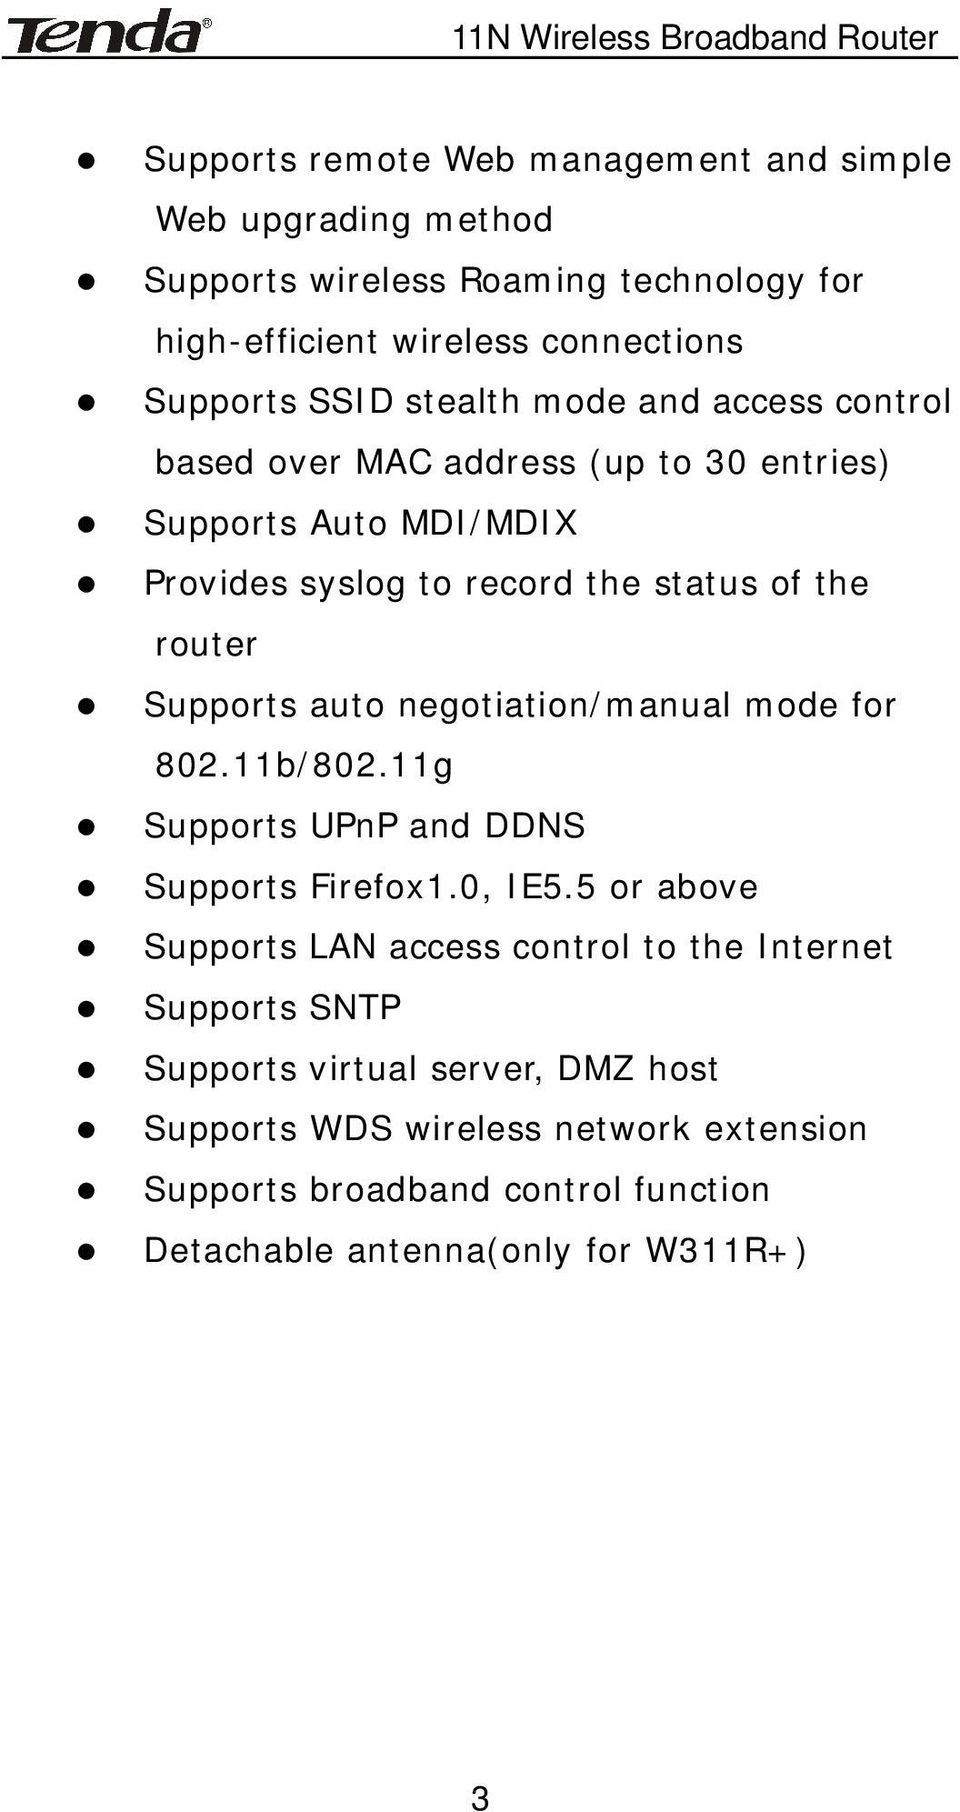 Supports auto negotiation/manual mode for 802.11b/802.11g Supports UPnP and DDNS Supports Firefox1.0, IE5.